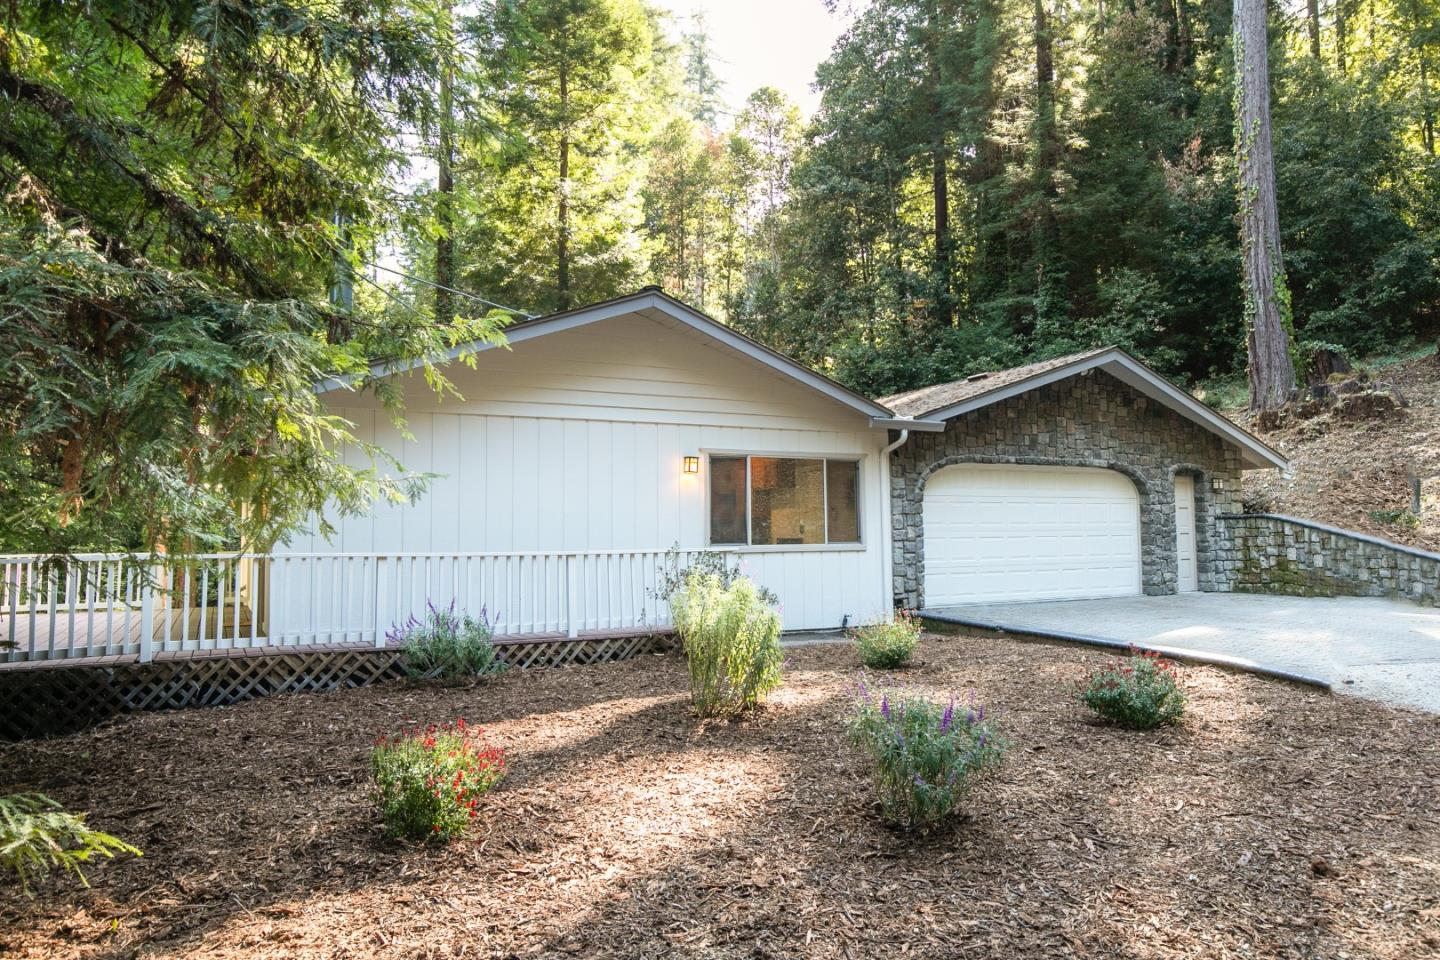 This one-level cottage in the redwoods has an open design. The open-beam, wood, insulated ceilings add a warmth to the spacious great room. The 4 skylights flood the home with natural light. The kitchen was updated in 2008. There is fresh paint inside & outside, brand new LVT flooring plus a brand new stove. This abode is conveniently attached to a 1378sf garage!! This garage is HUGE!! If you need an at home shop or if you have 6 cars that you want inside of your garage or if you collect A LOT of stuff then this is the garage for you! There are FOUR 220 outlets in the garage + plugs all the way down every wall. There is also an attic the length of the garage,  so LOTS of storage space. Just 5 minutes to the conveniences of Ben Lomond, this location benefits from Comcast high-spd internet & San Lorenzo Valley Water. Come see this sweet abode & monster garage before it's gone! Check out the 3D virtual walk thru tour! Agent available to host open by appt Sat/Sun if appts get prescheduled.